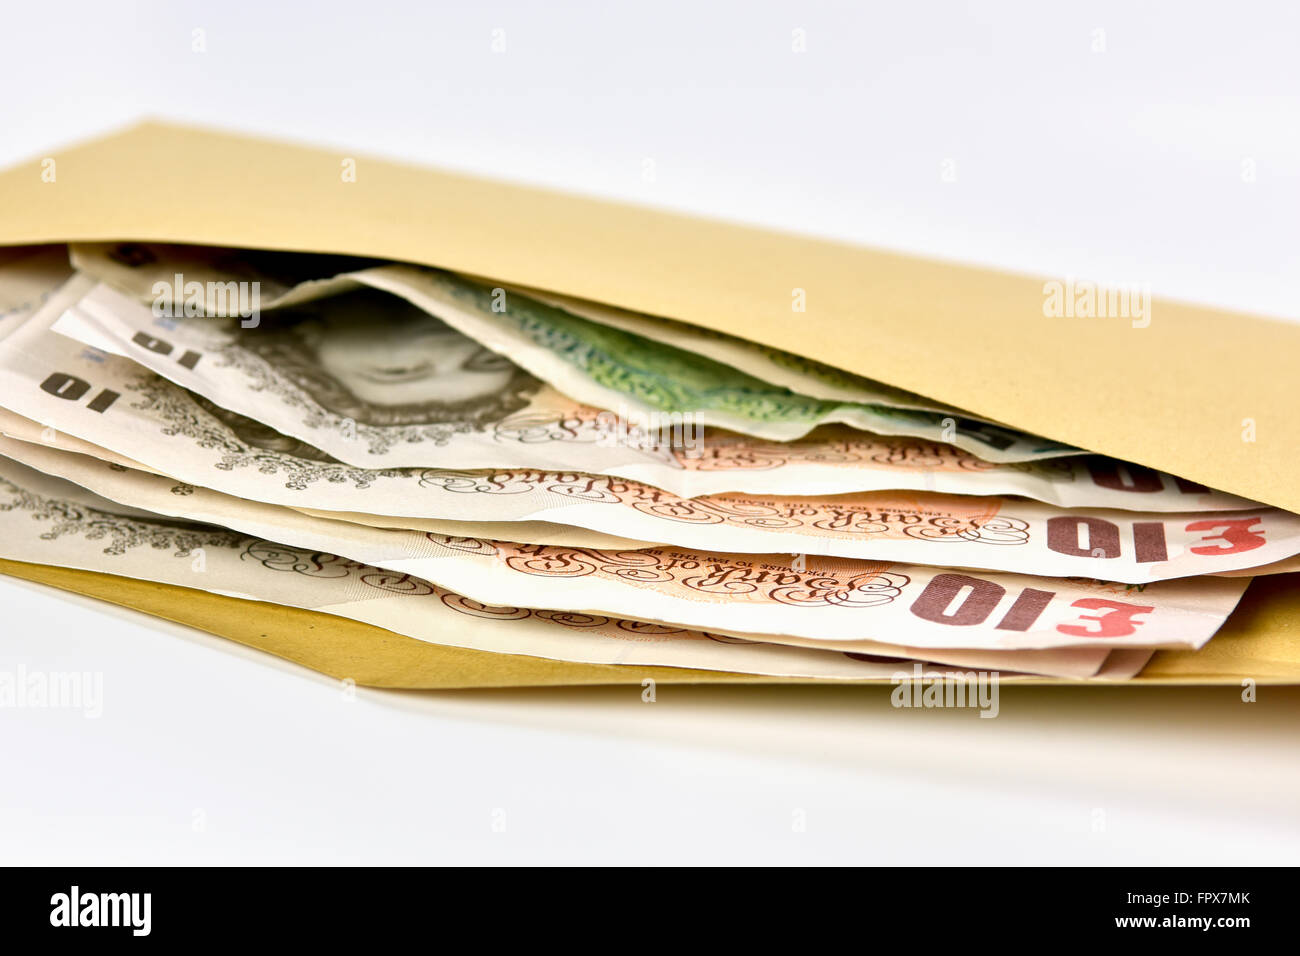 Wad of bank notes in British Sterling currency in brown envelope - Stock Image